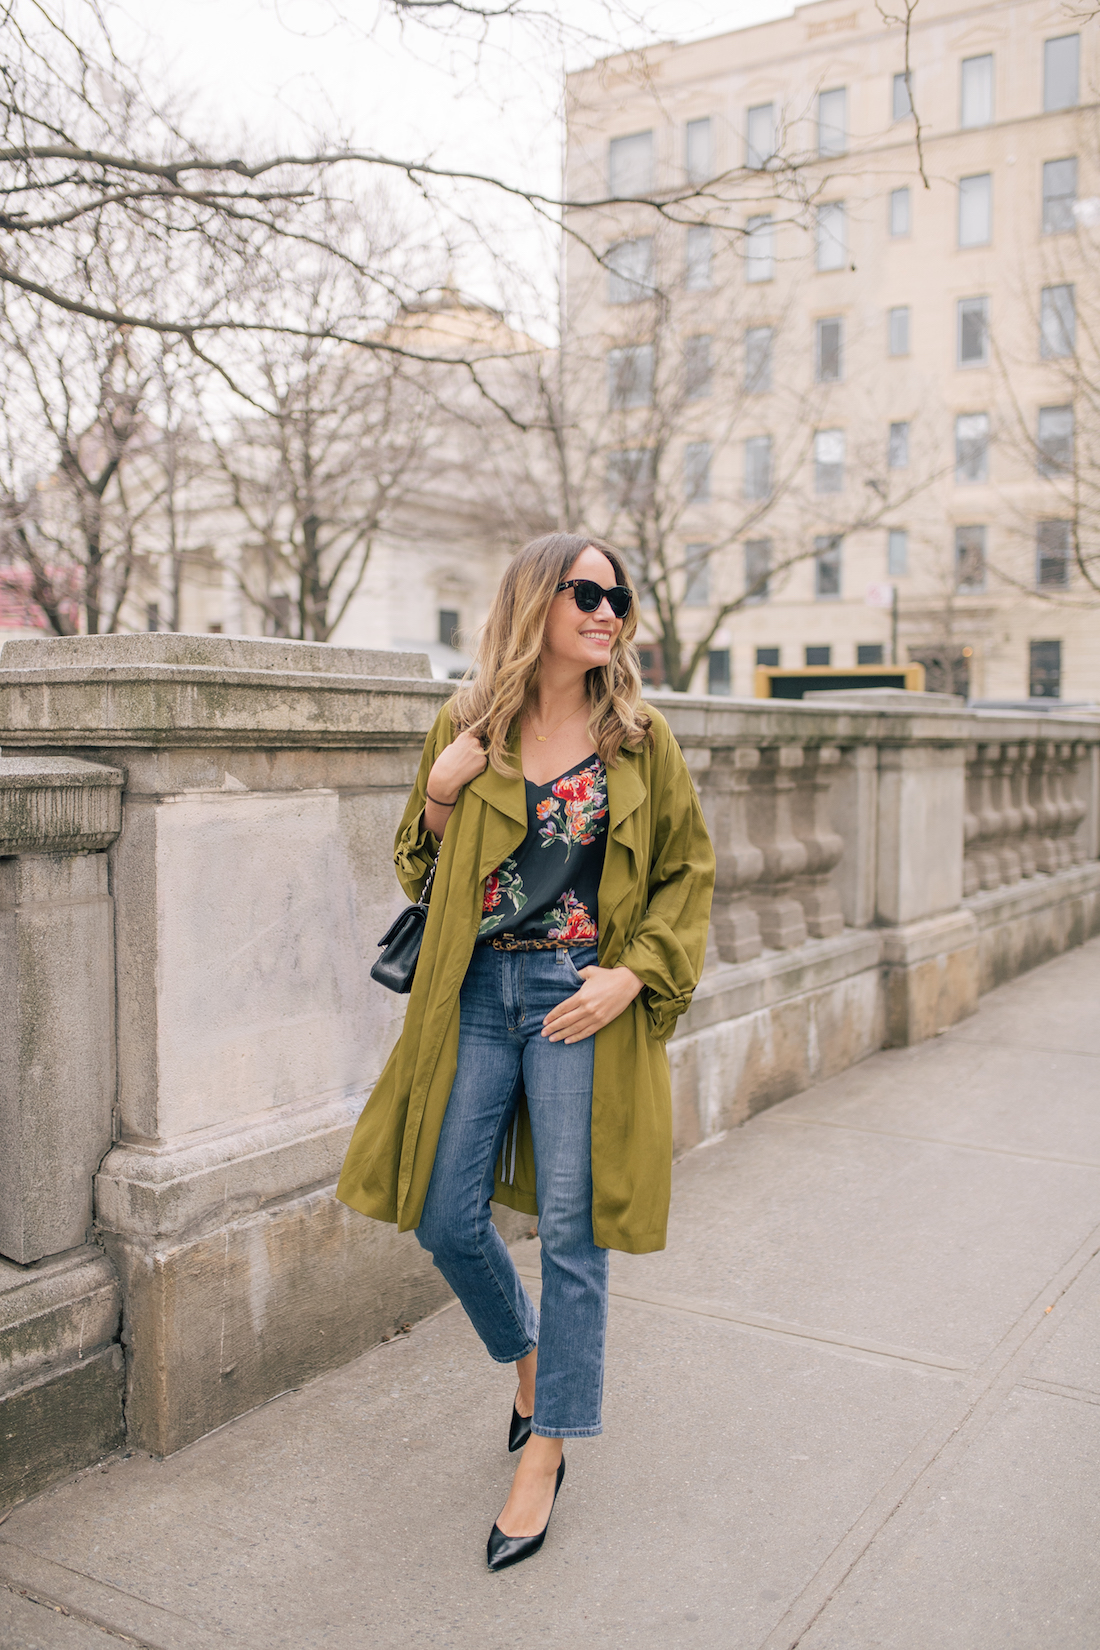 An Easy Everyday Look - Outfit Details: Topshop Trench // Floral Camisole // Joe's Jeans // Sarah Flint Perfect Pumps // Chanel Purse // J.Crew Tortoise Belt // Polaroid Sunglasses // Daisy Jewelry x Estee Lalonde necklace